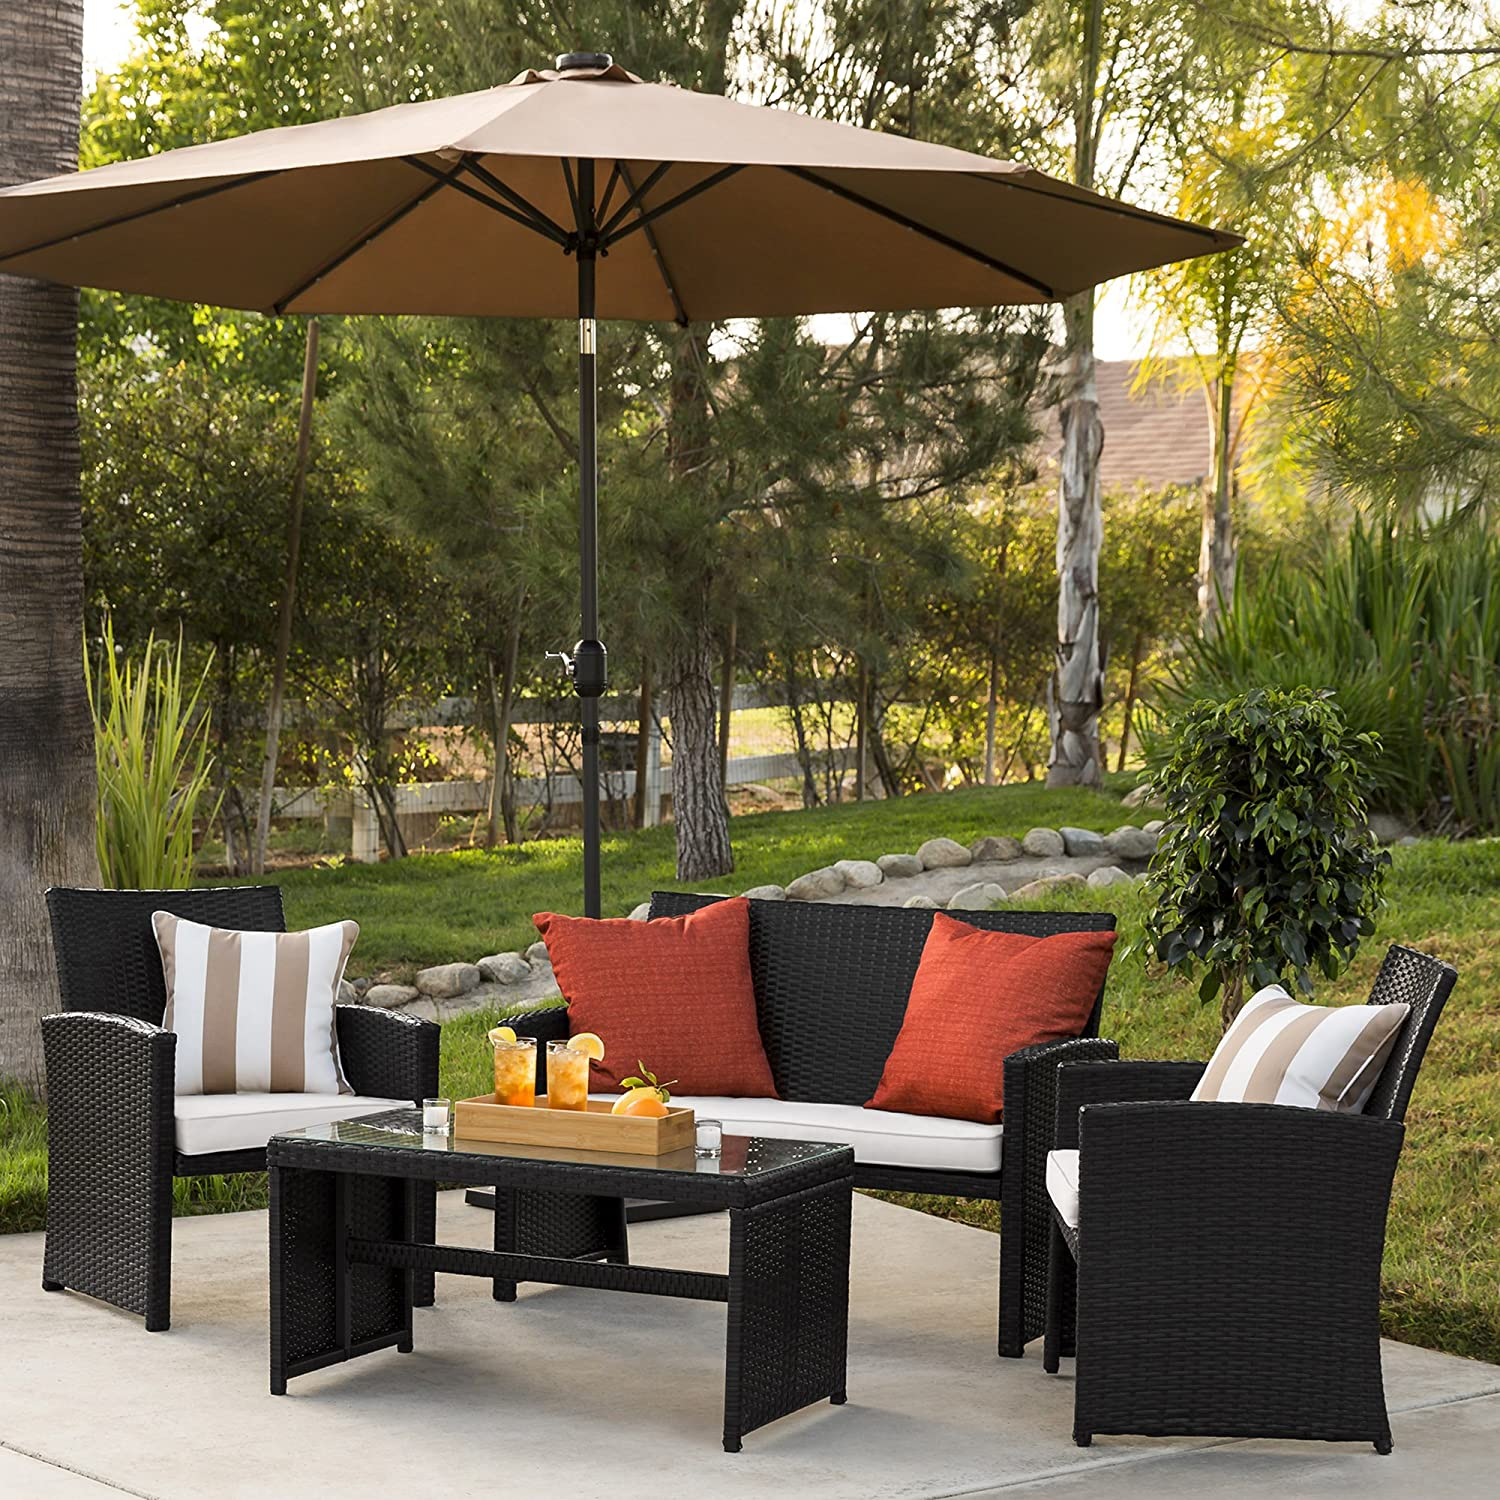 Best Choice Products 4-Piece Wicker Patio Conversation Furniture Set with 4 Seats and Tempered Glass Top Table, Black